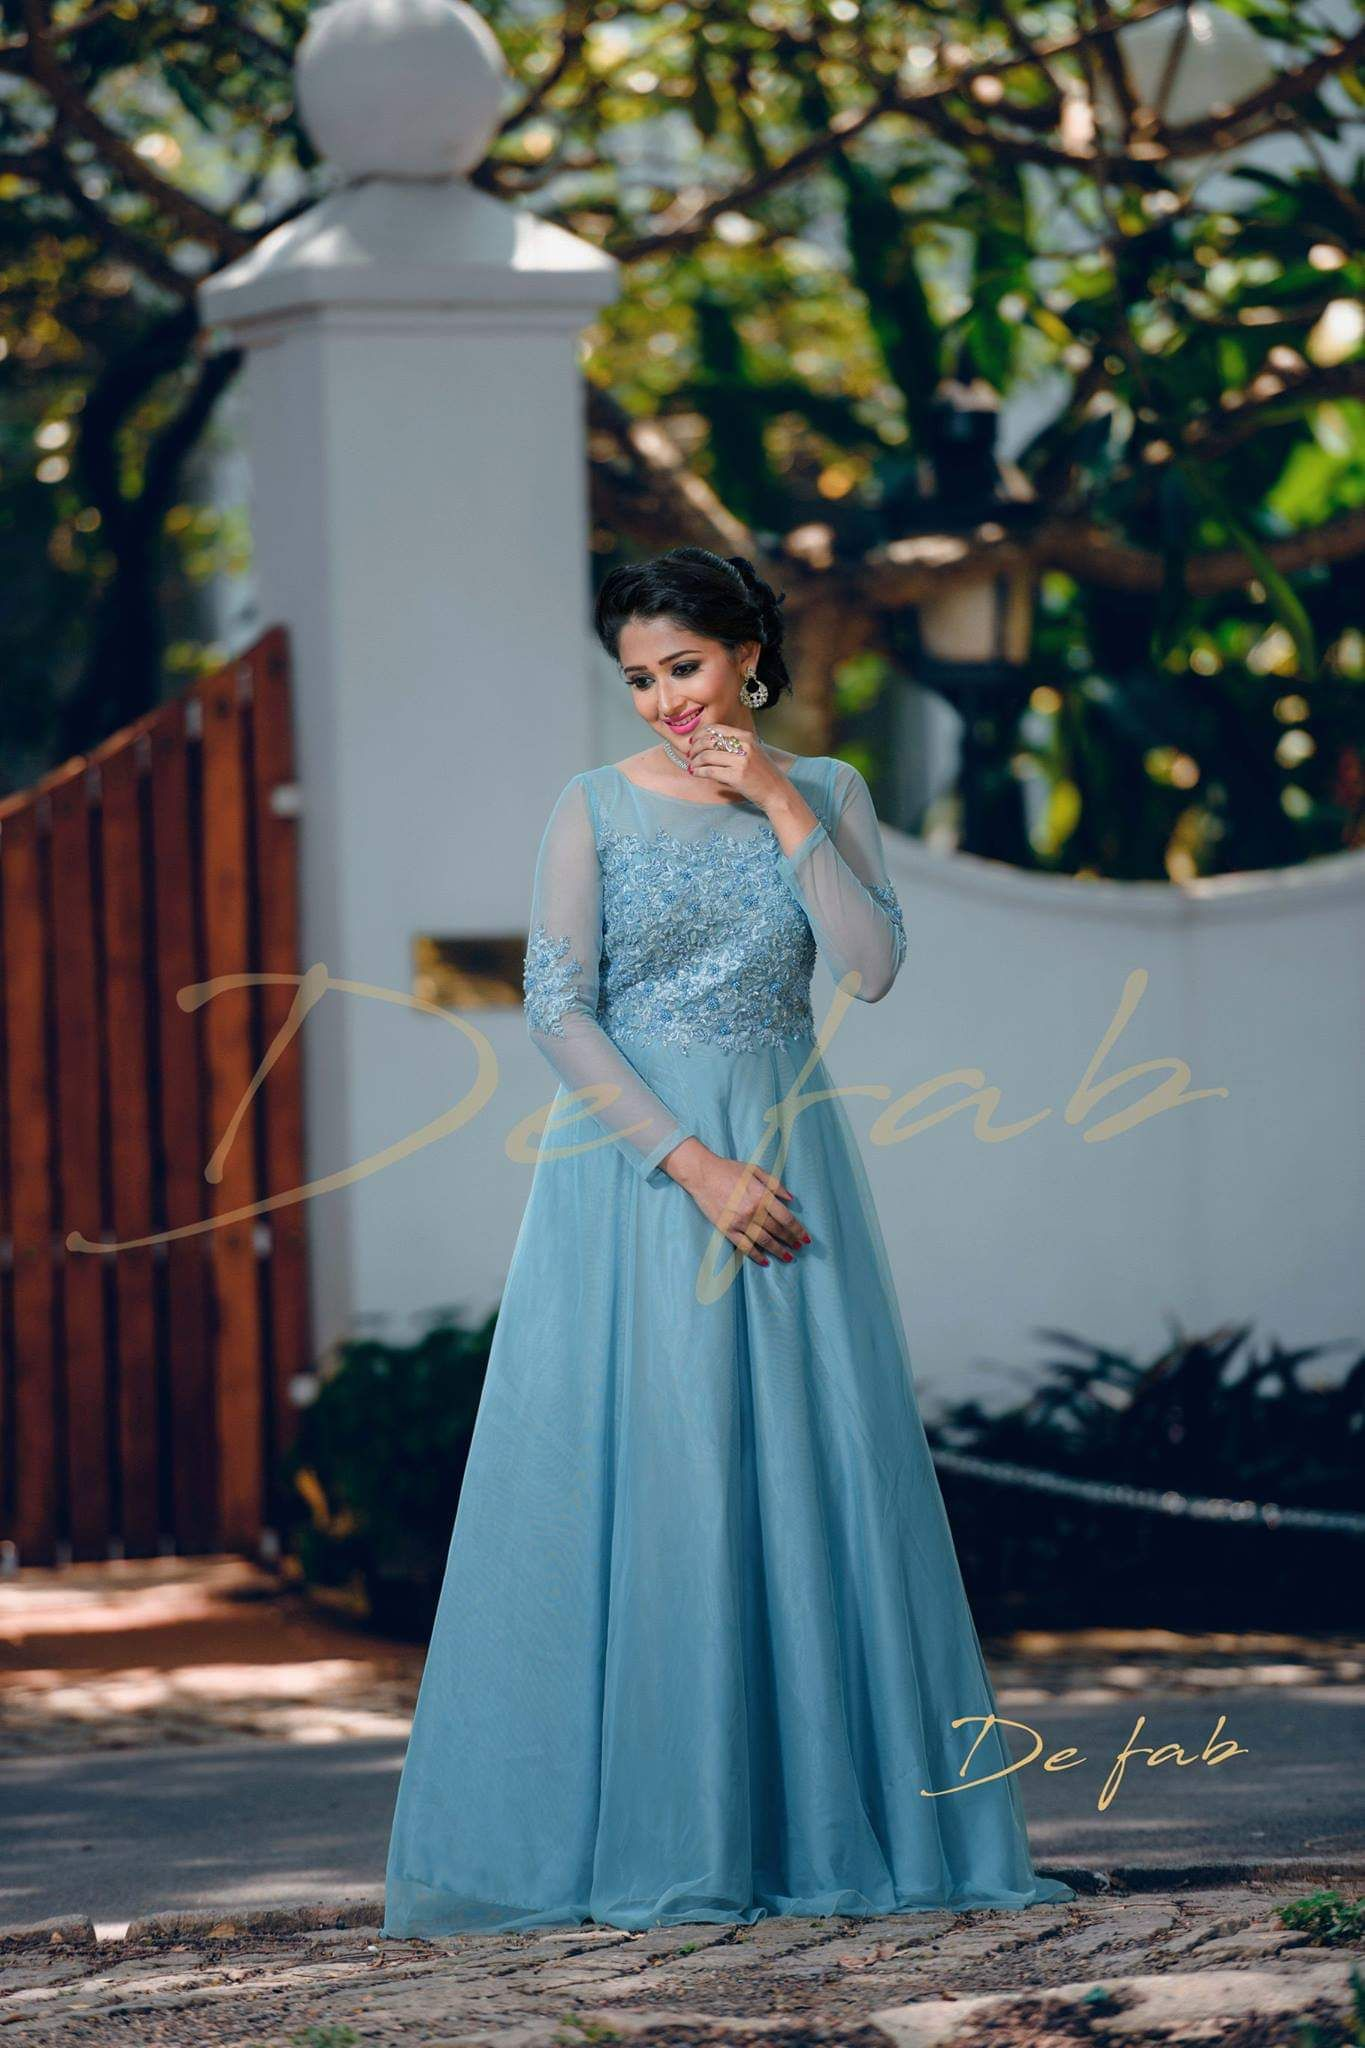 Pin By Passion Everywhere On Gowns Party Wears Indian Gowns Dresses Designer Anarkali Dresses Long Dress Design [ 2048 x 1365 Pixel ]